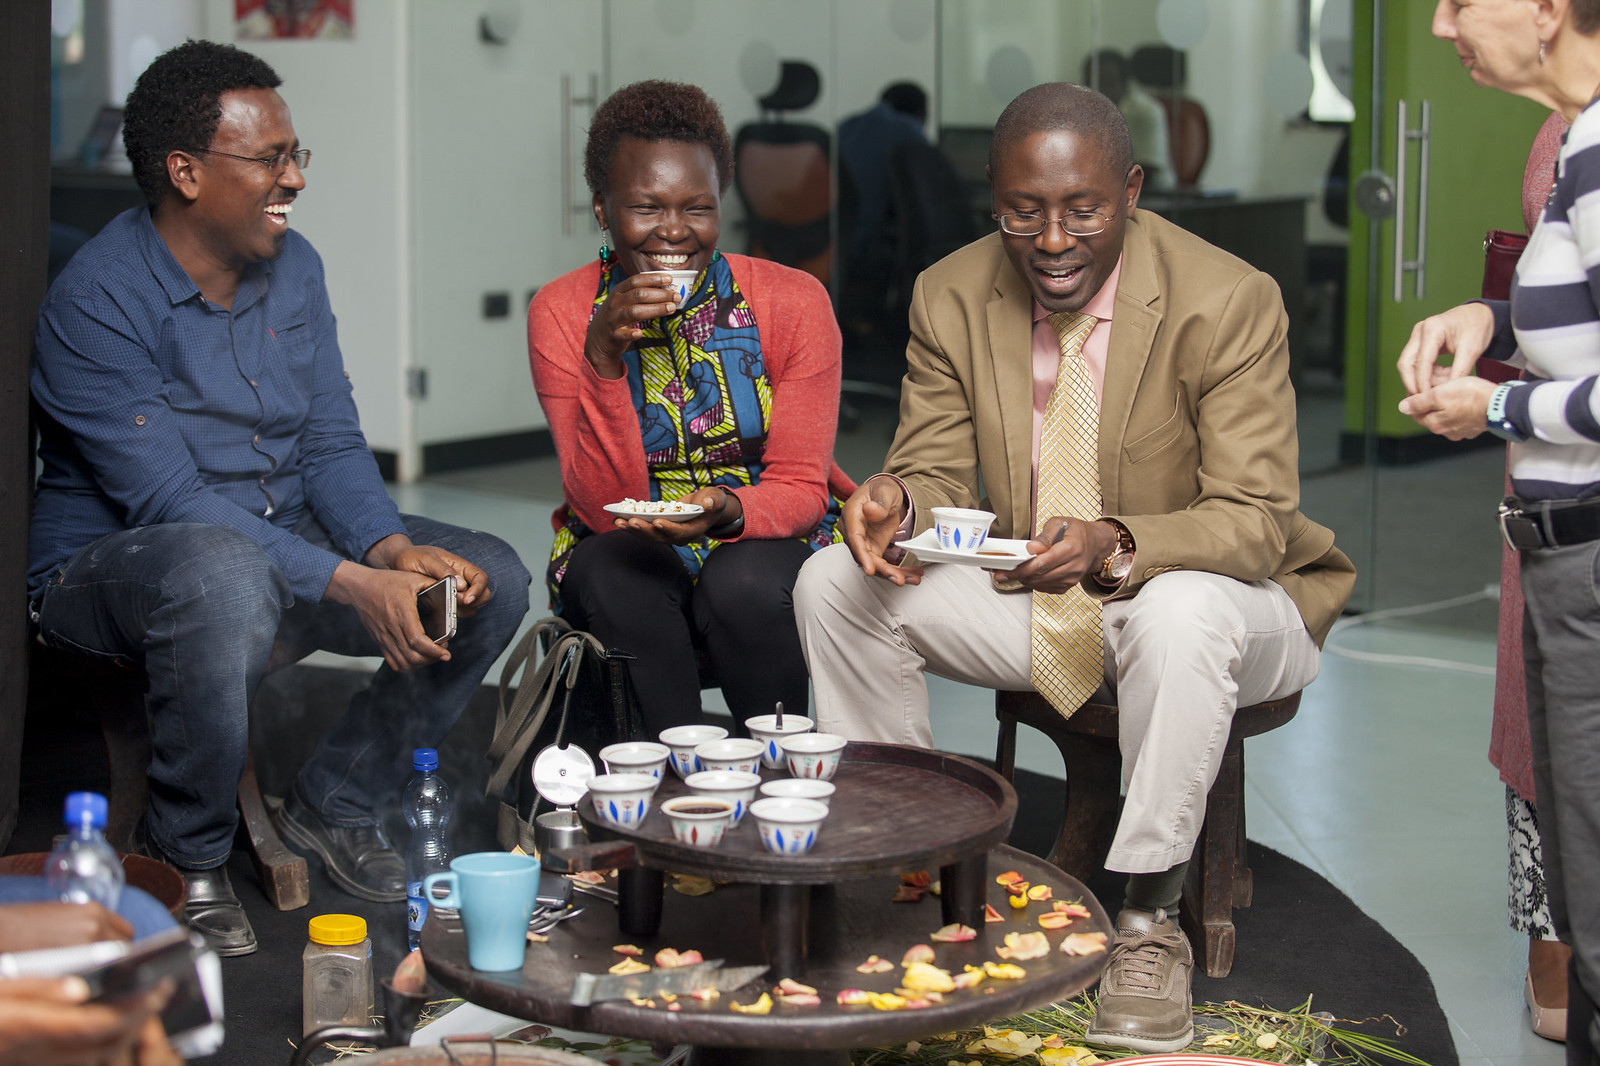 Participants in the YALI program enjoy traditional African tea